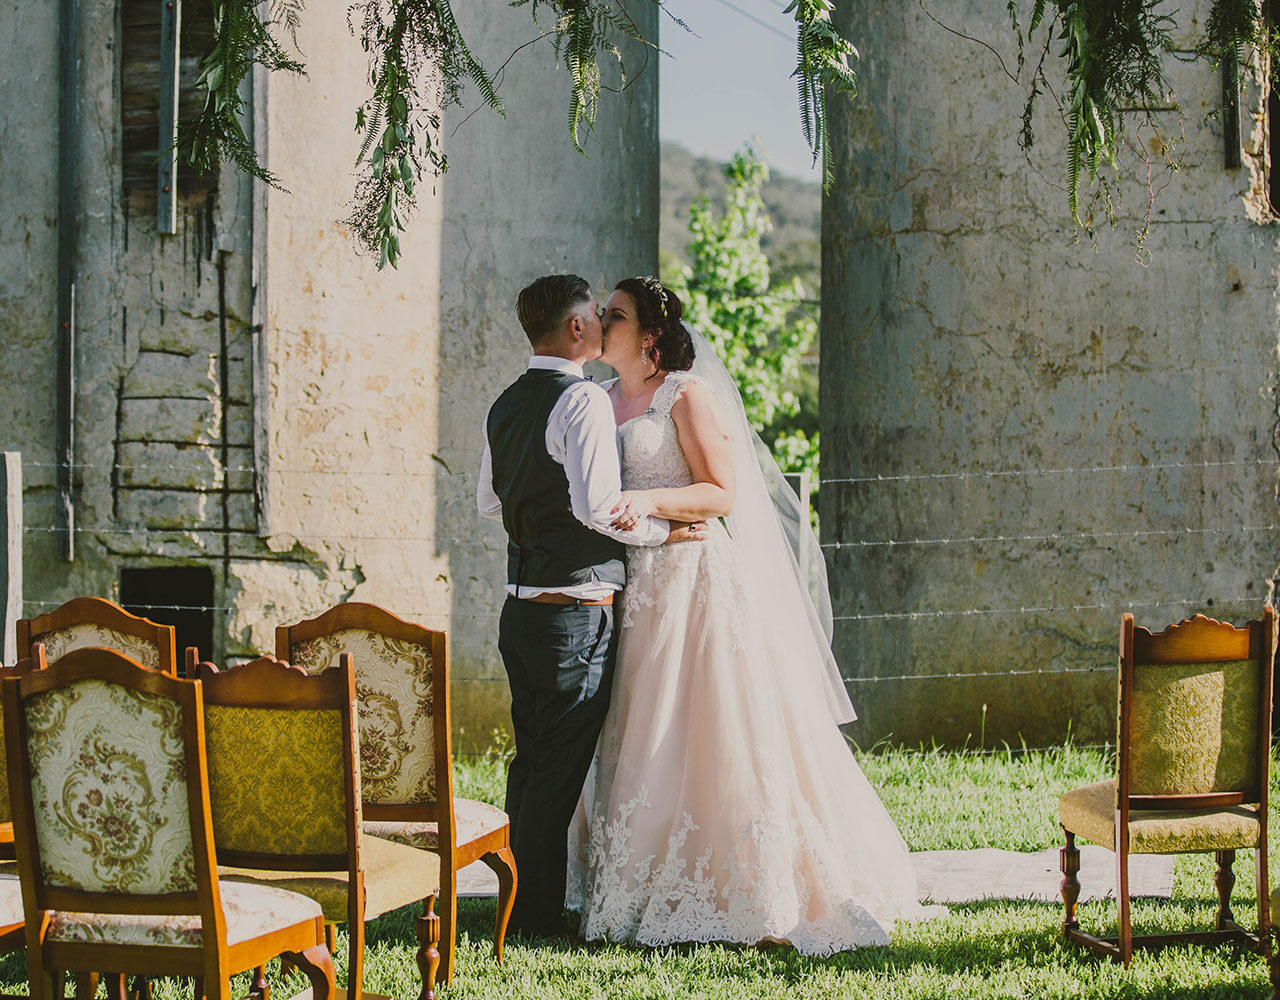 Weddings at Angel Sussurri Floral Artisans